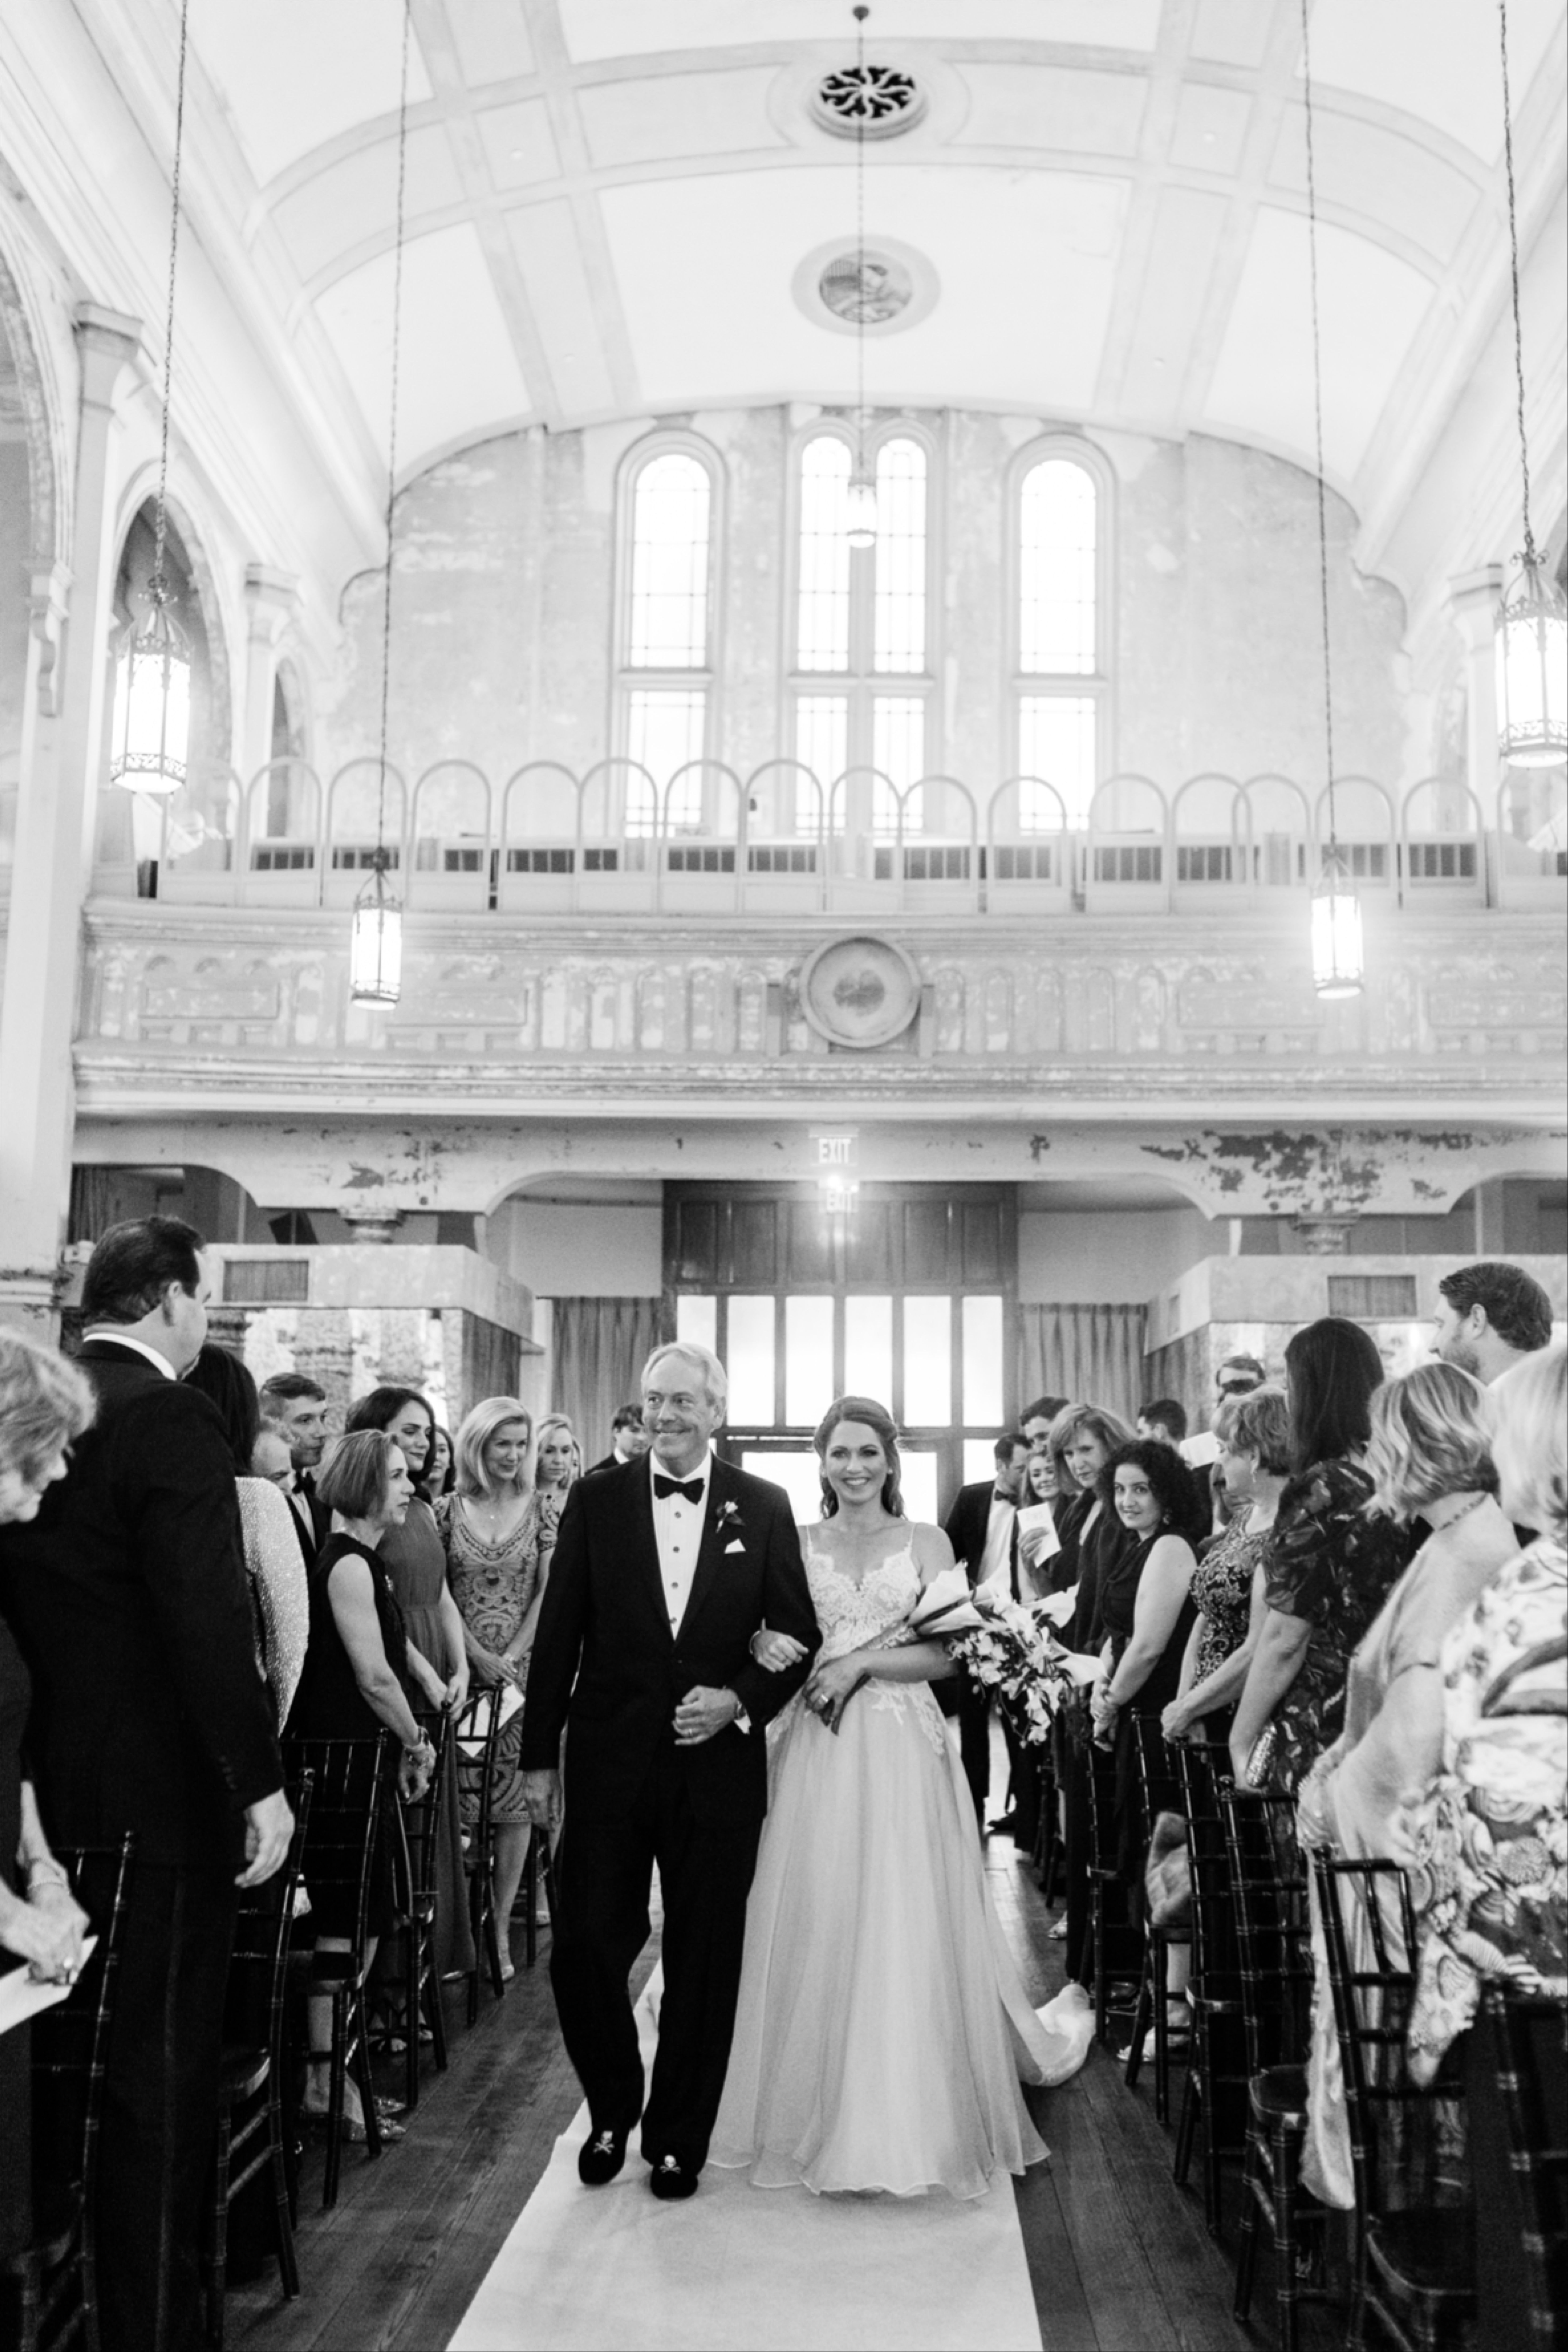 Stunning Black Tie Wedding Ceremony At Old New Orleans Church